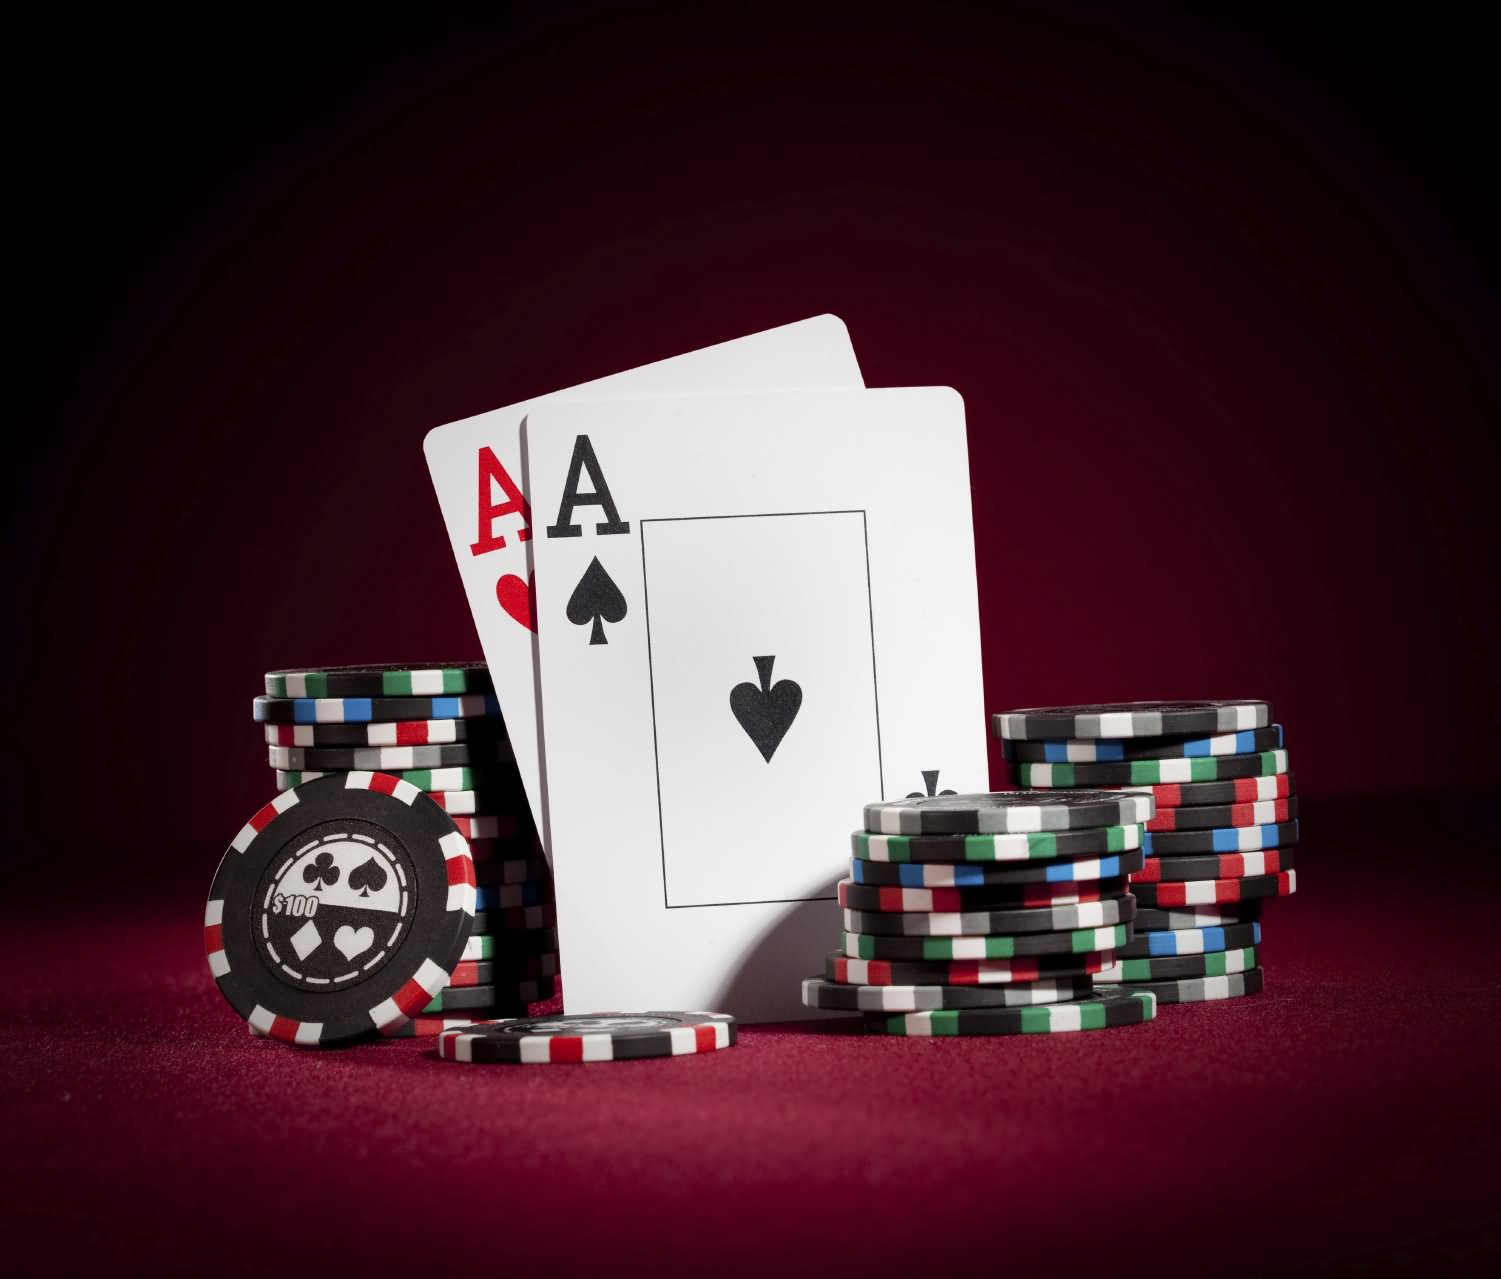 It is possible to add winnings to Our Casino enter their website, and you will see the difference